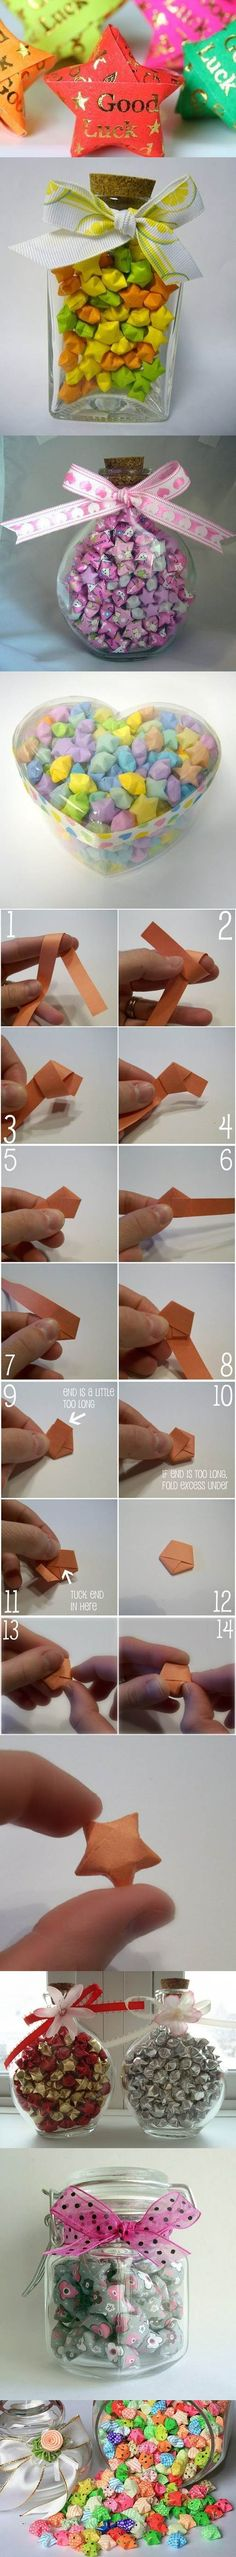 DIY Origami Lucky Stars | iCreativeIdeas.com Like Us on Facebook ==> https://www.facebook.com/icreativeideas